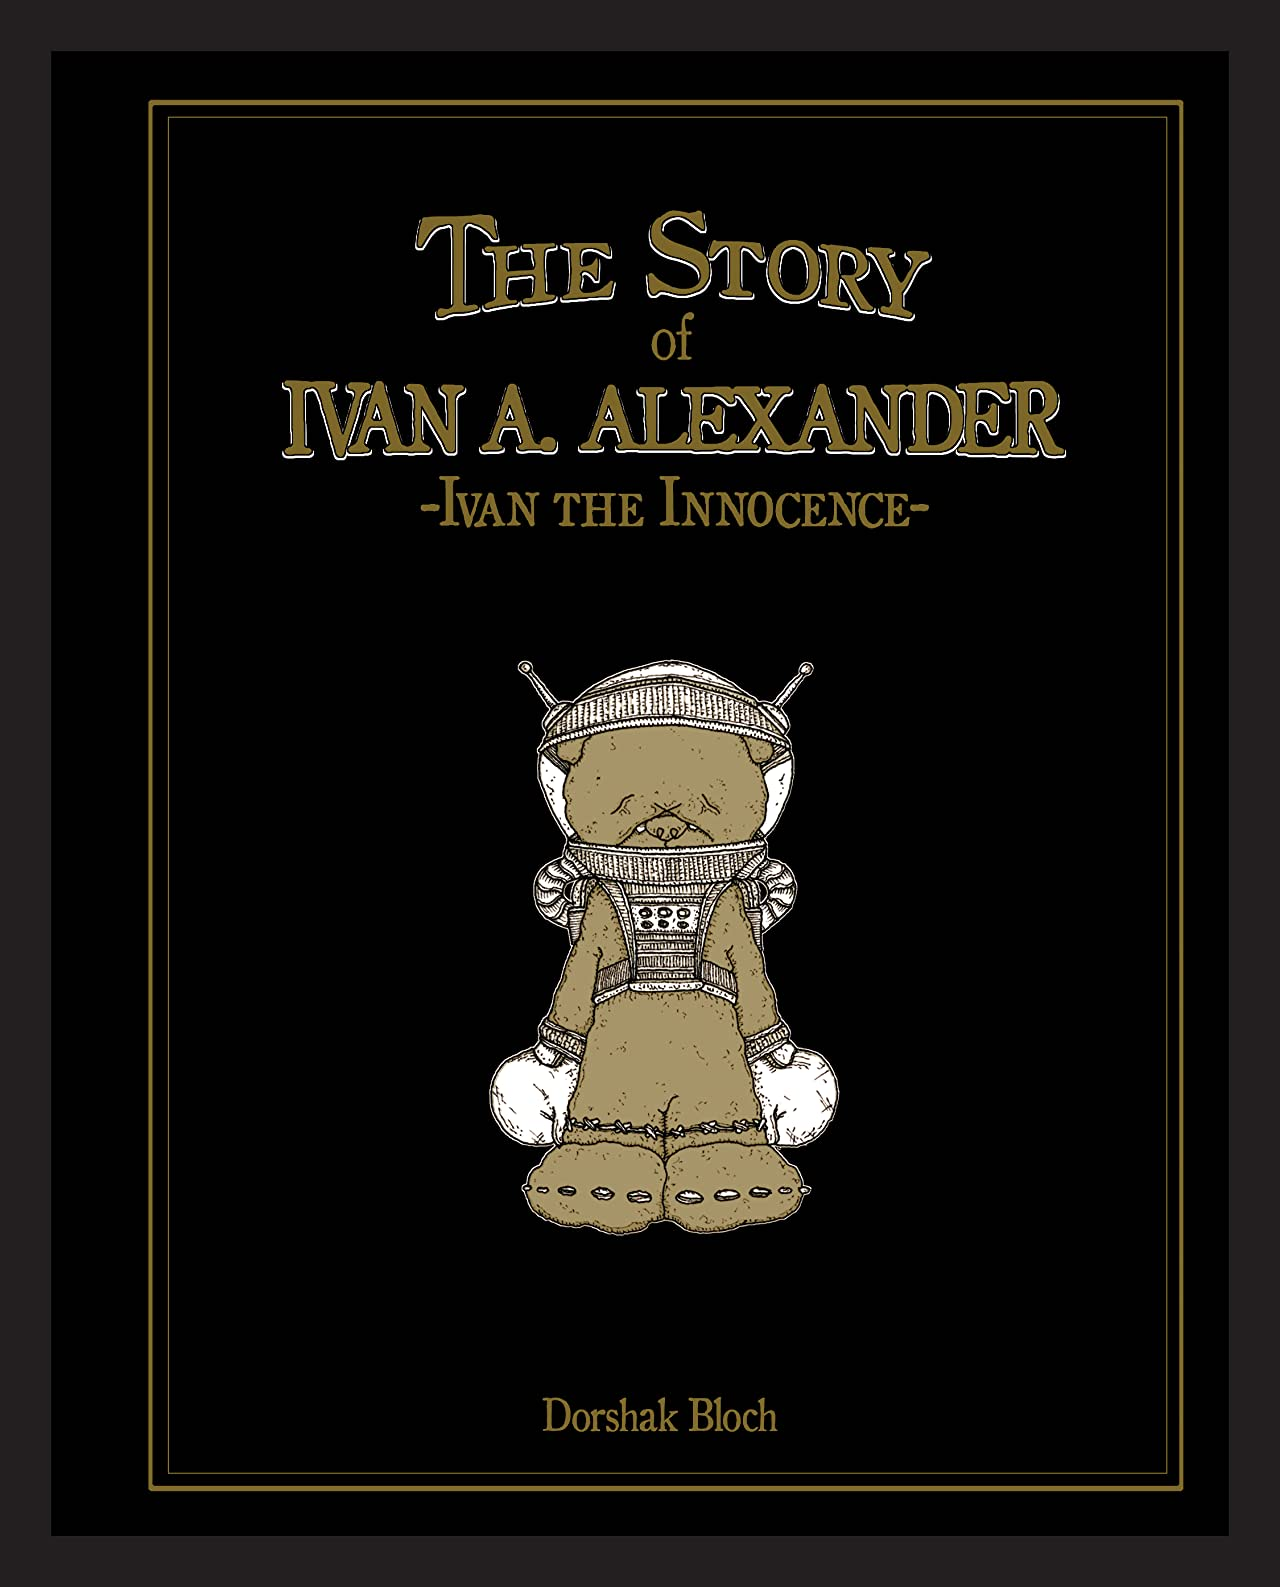 Dorshak Bloch: The Story of Ivan A. Alexander-Ivan the Innocence